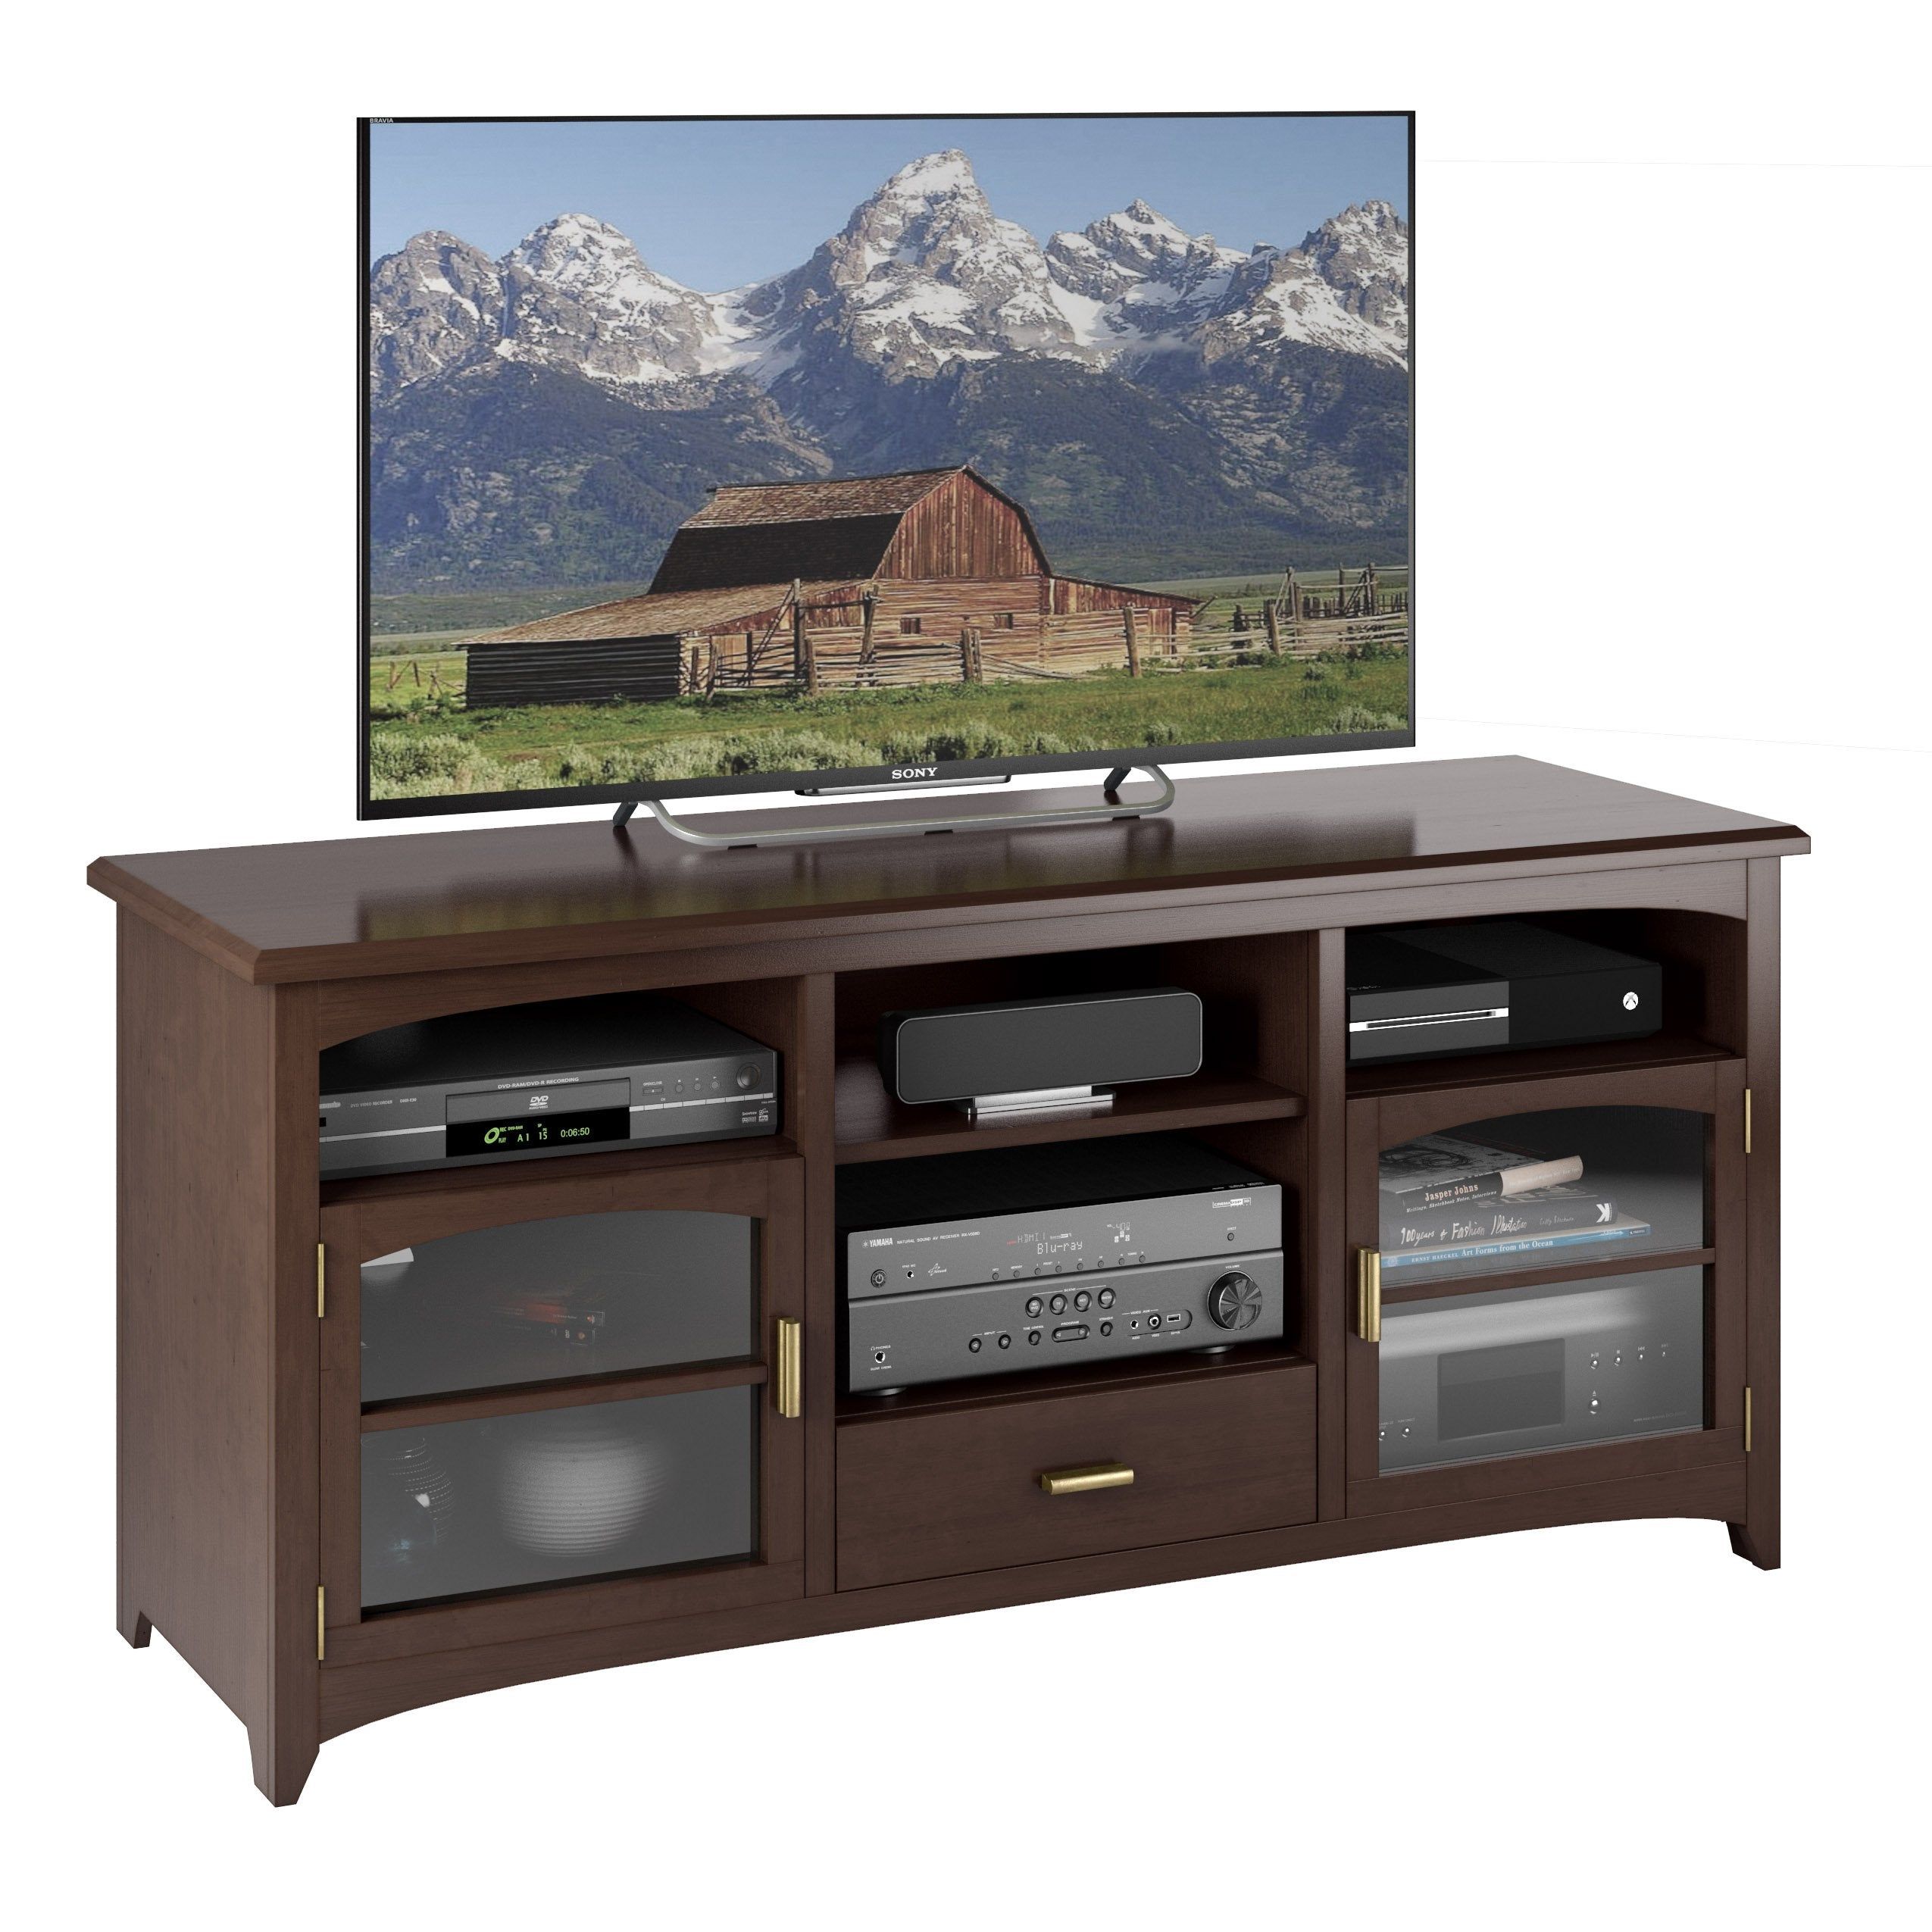 Stupendous Dark Espresso Wooden Tv Bench For Tvs Up To 70 Onthecornerstone Fun Painted Chair Ideas Images Onthecornerstoneorg